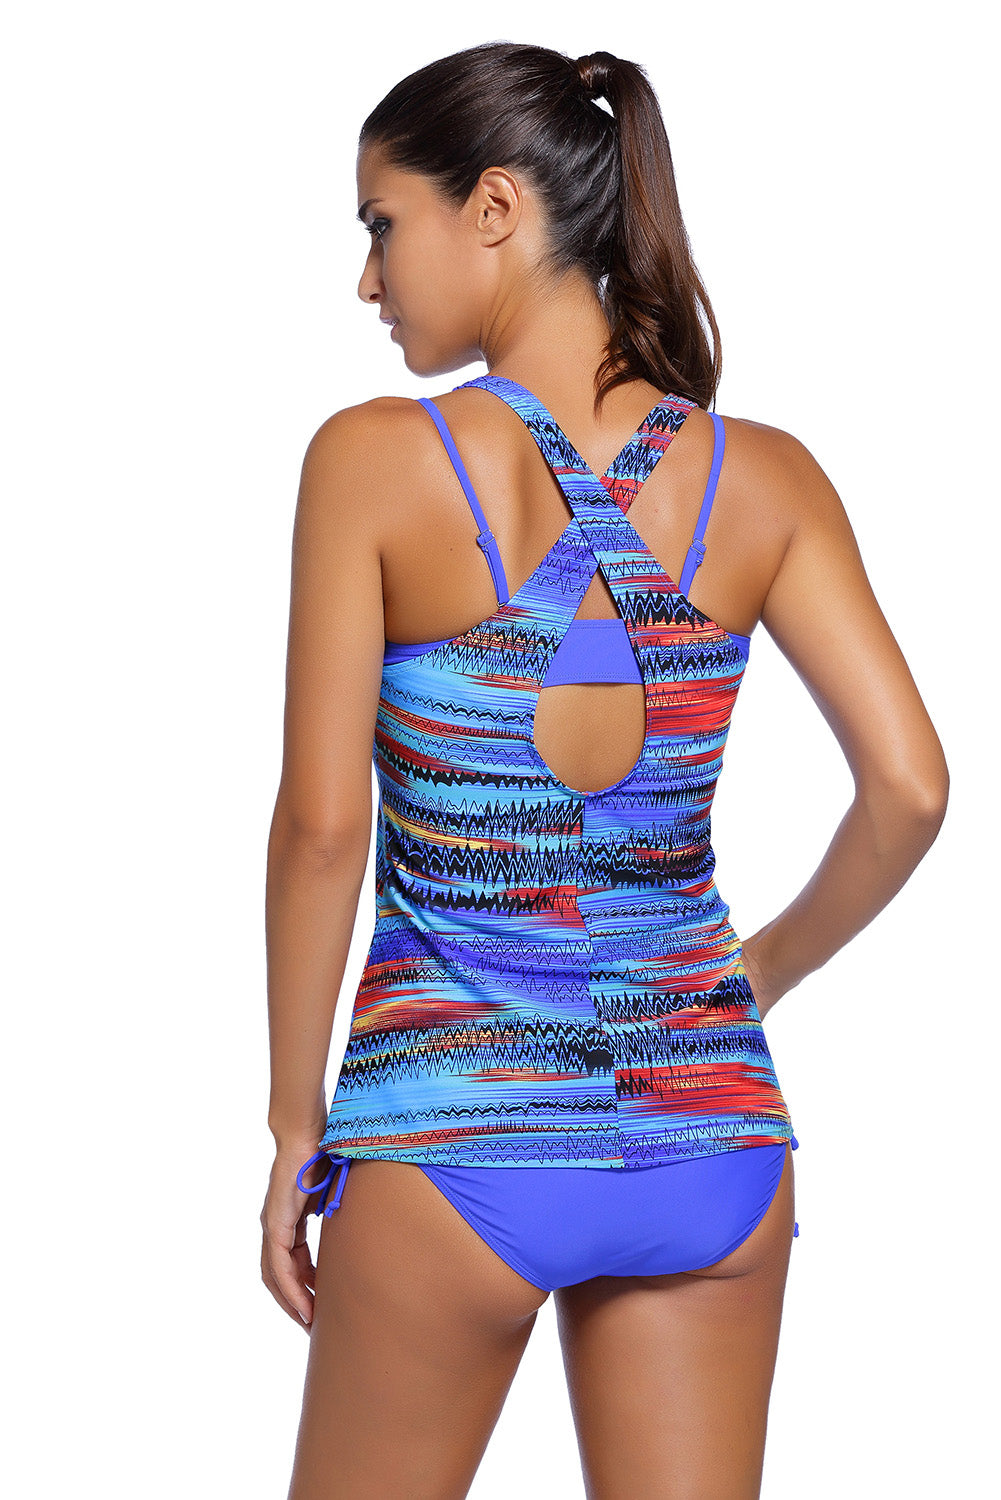 Blue Bandeau Bikini Swimsuit Printed Vest Tunic